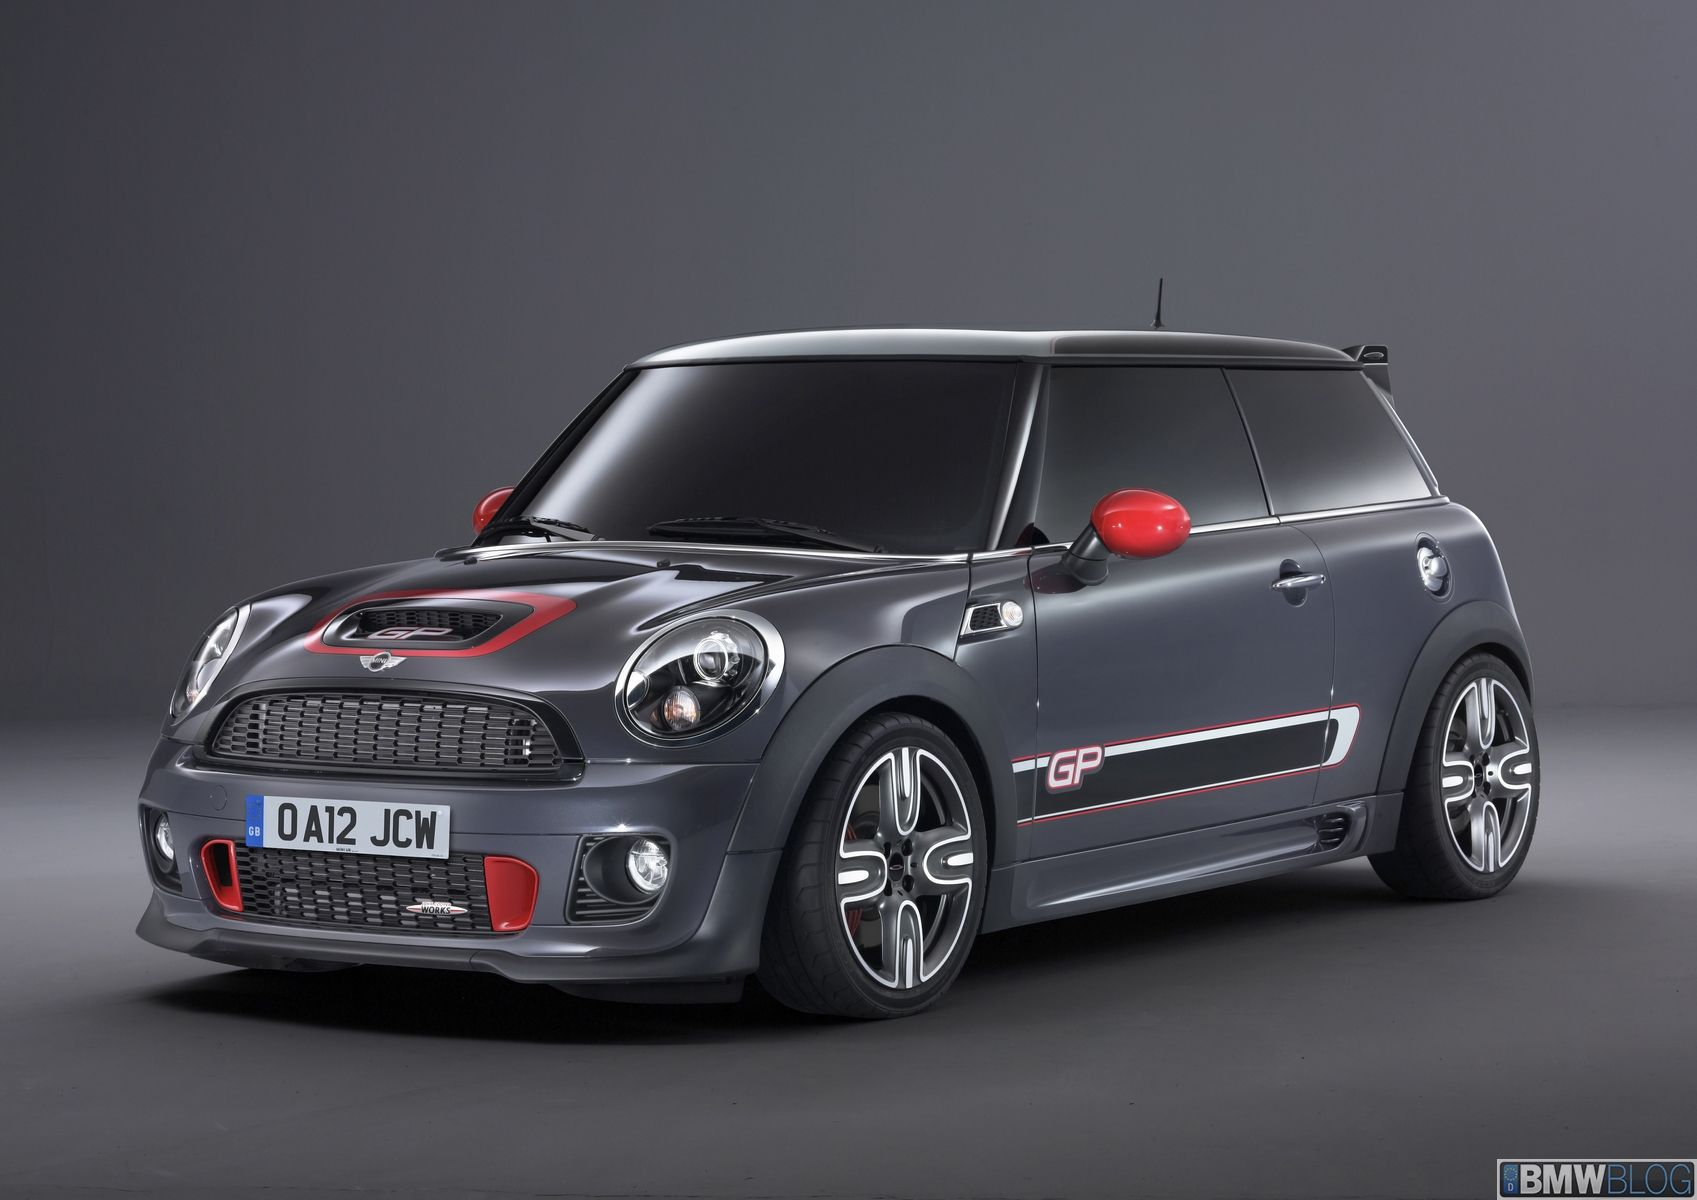 High resolution picture sets in wallpaper format full technical specifications and information on the 2012 mini john cooper works gp